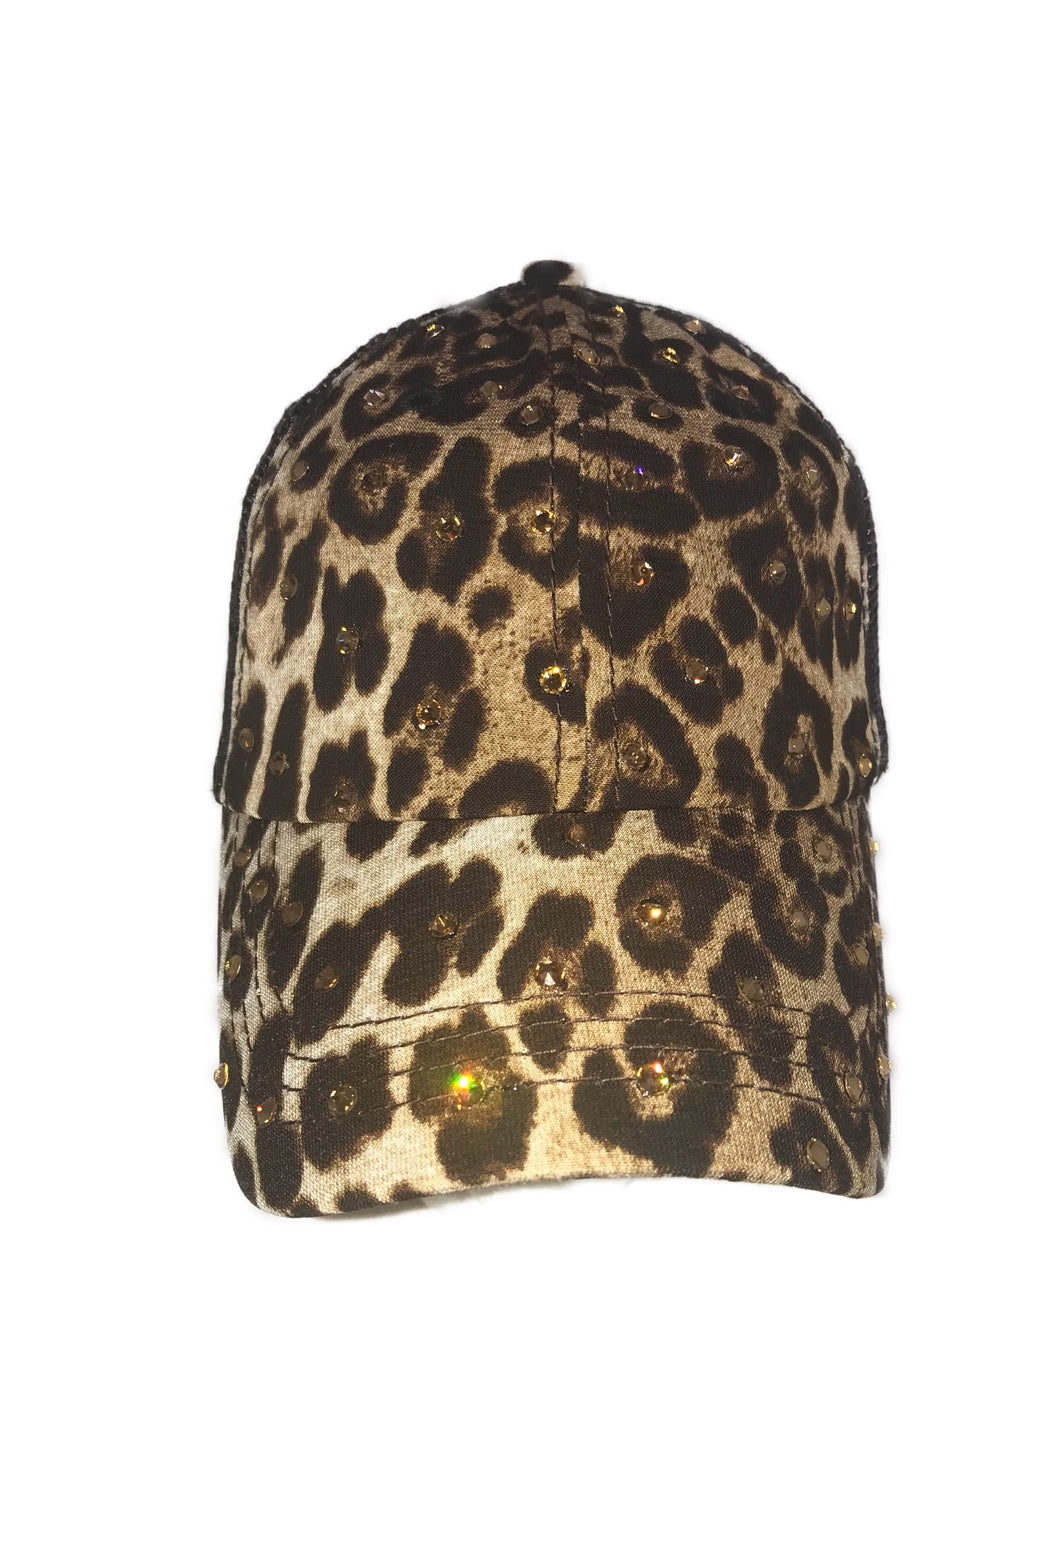 Leopard Ponytail Hat - Black Mesh Back